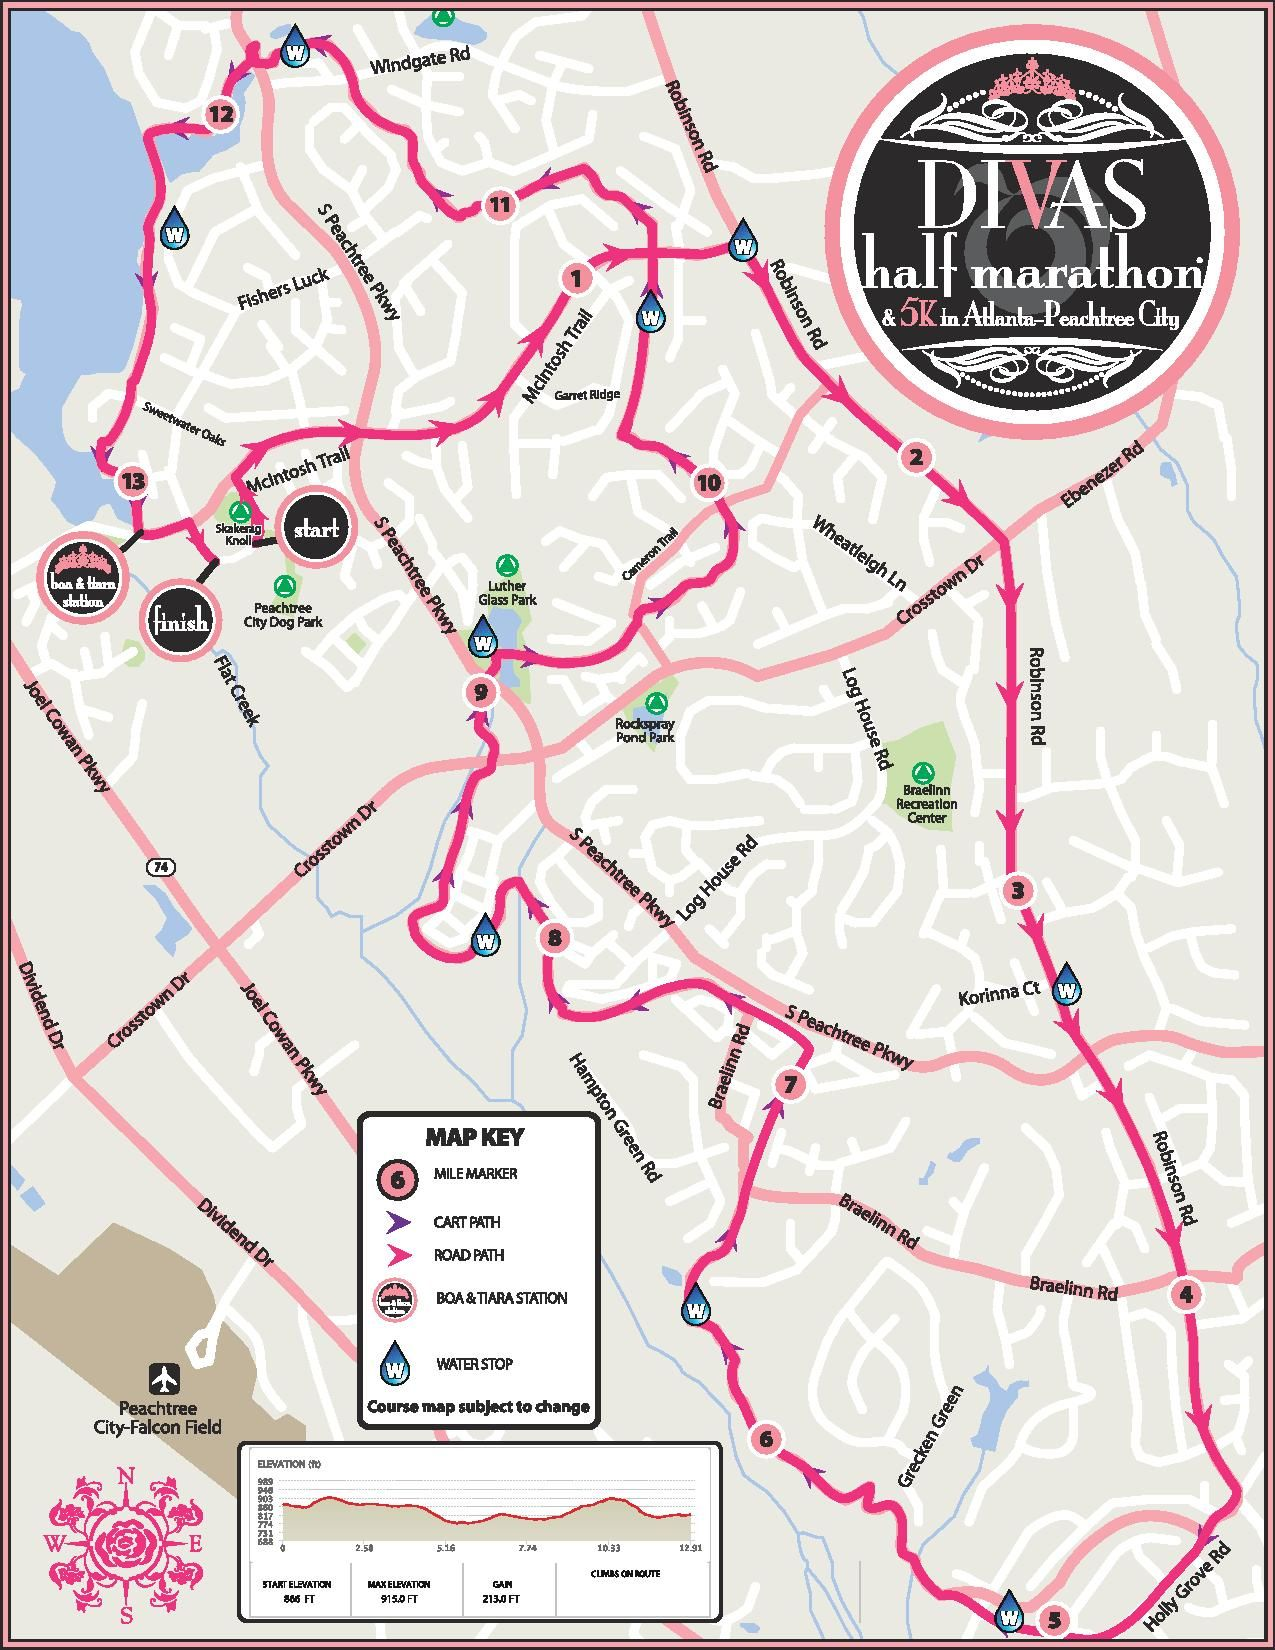 Peachtree Georgia Map.Peachtree City Half Marathon Course Map Fitness Pinterest City